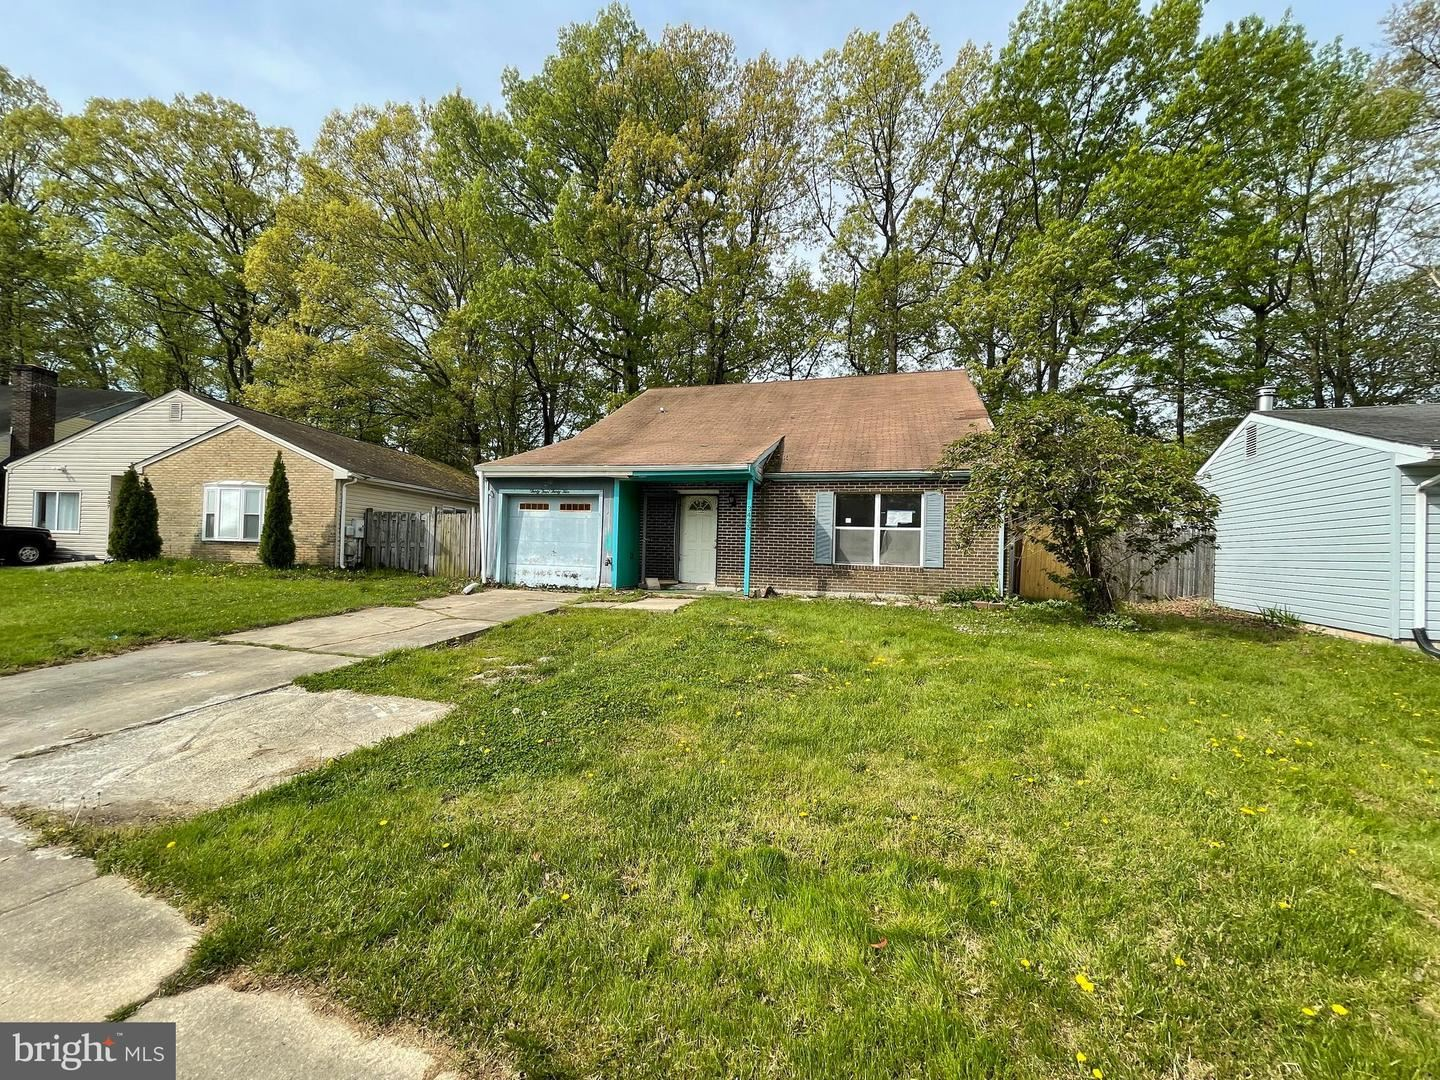 3435 ALBANTOWNE WAY, Edgewood, MD 21040 - MLS#: MDHR259482